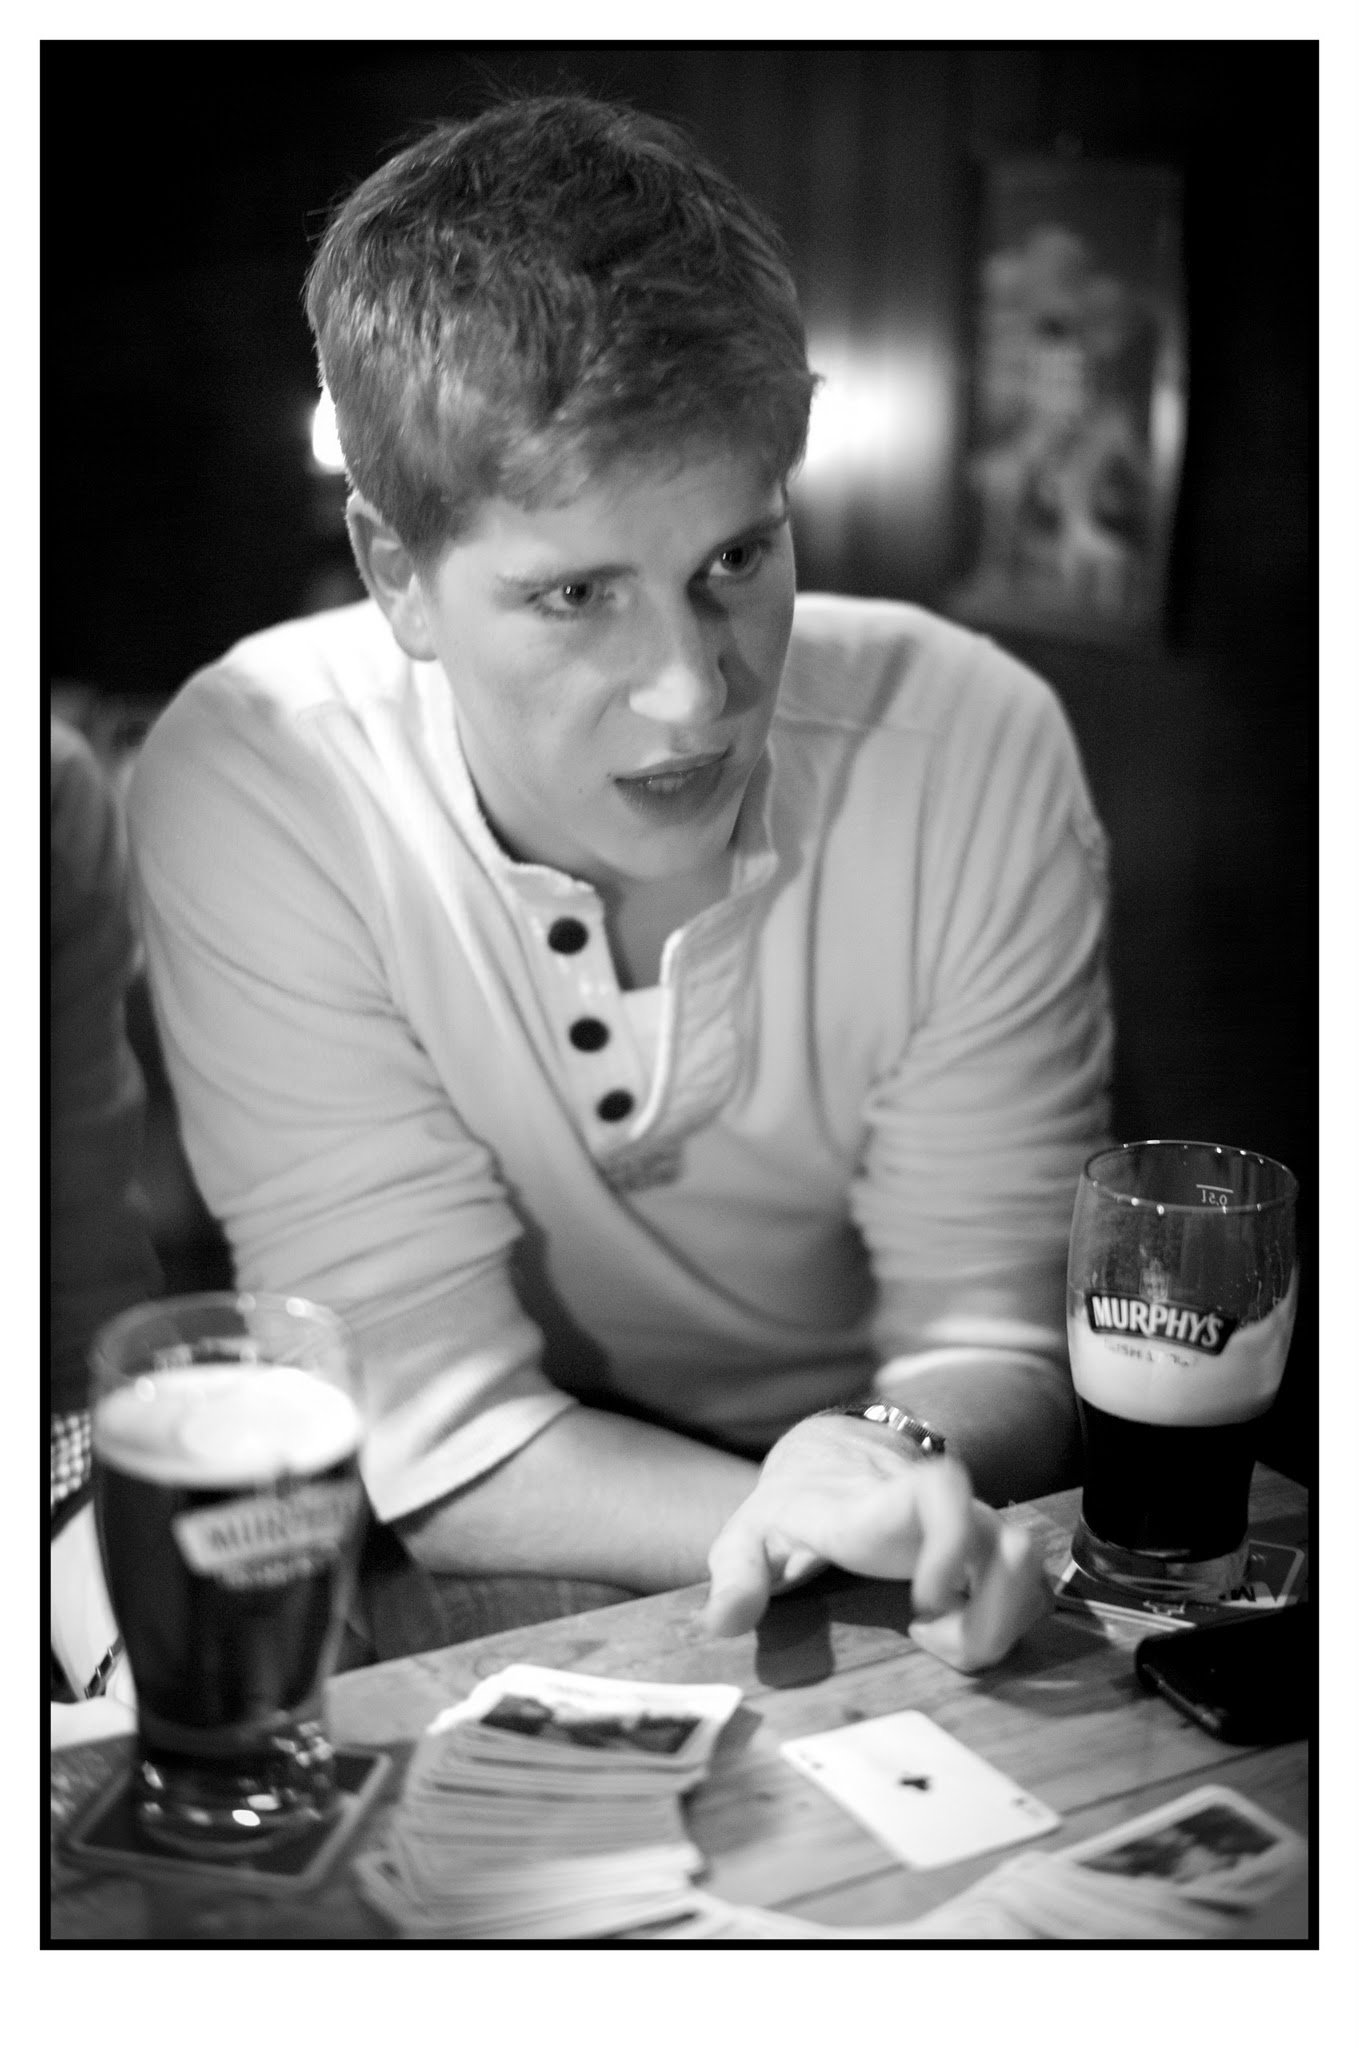 Explaining the game | Paddy Murphy's, Rotterdam, 2012